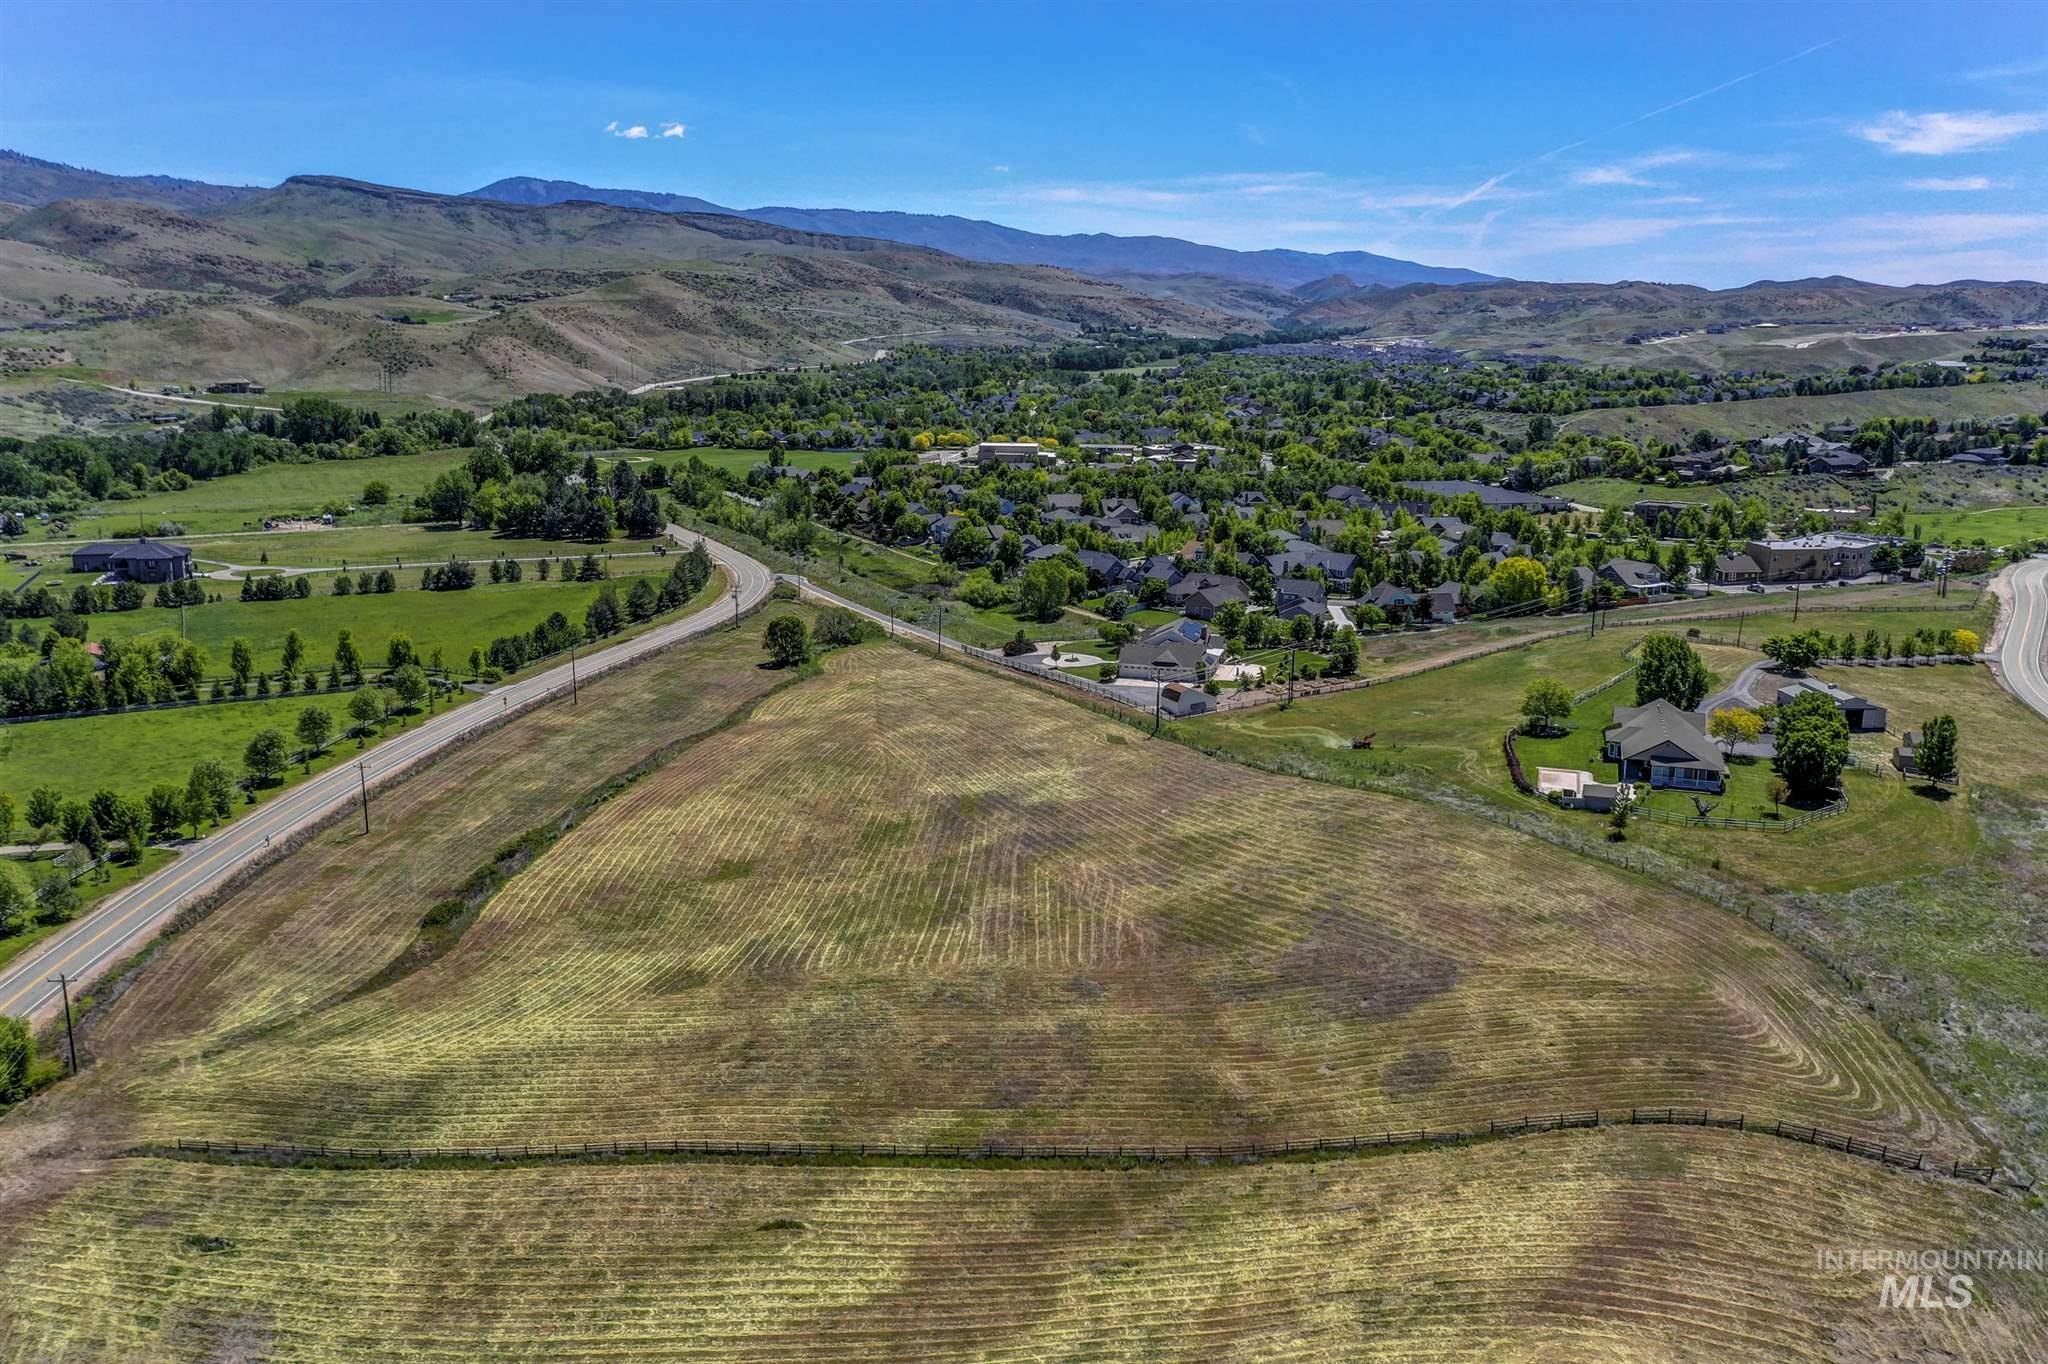 N Broken Horn Road, Boise, Idaho 83714, Land For Sale, Price $600,000, 98767149